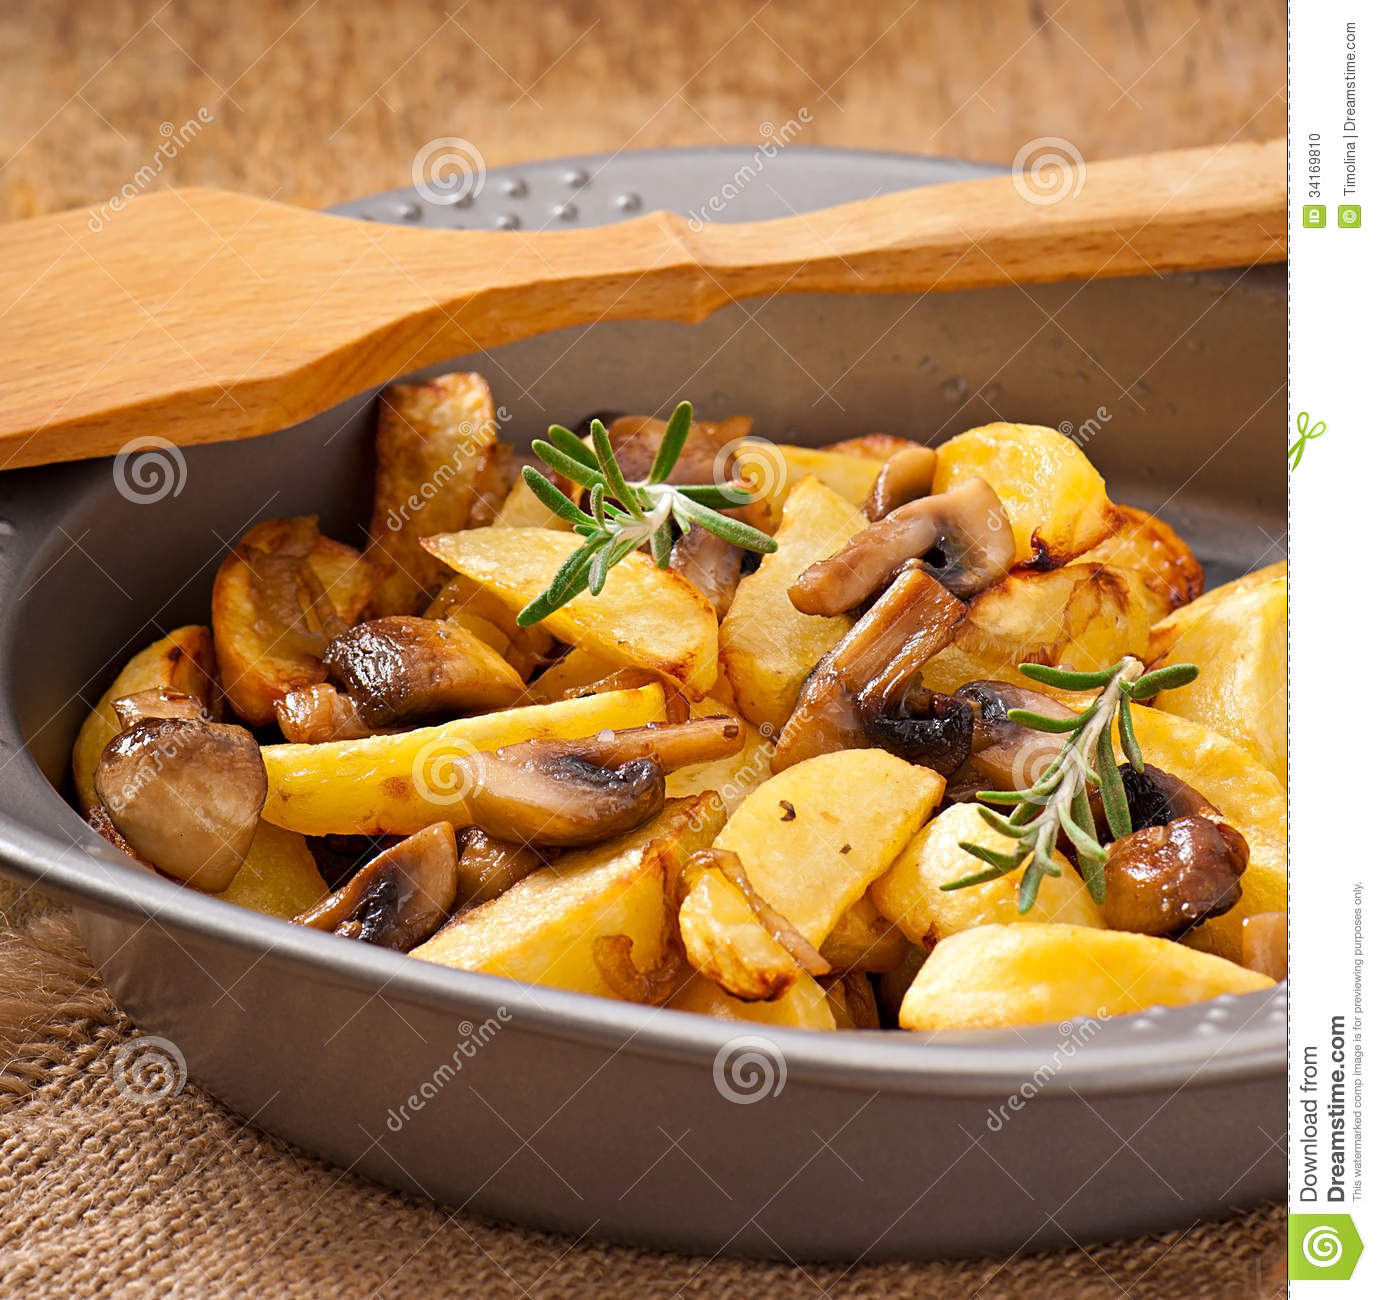 How to fry potatoes with mushrooms 24